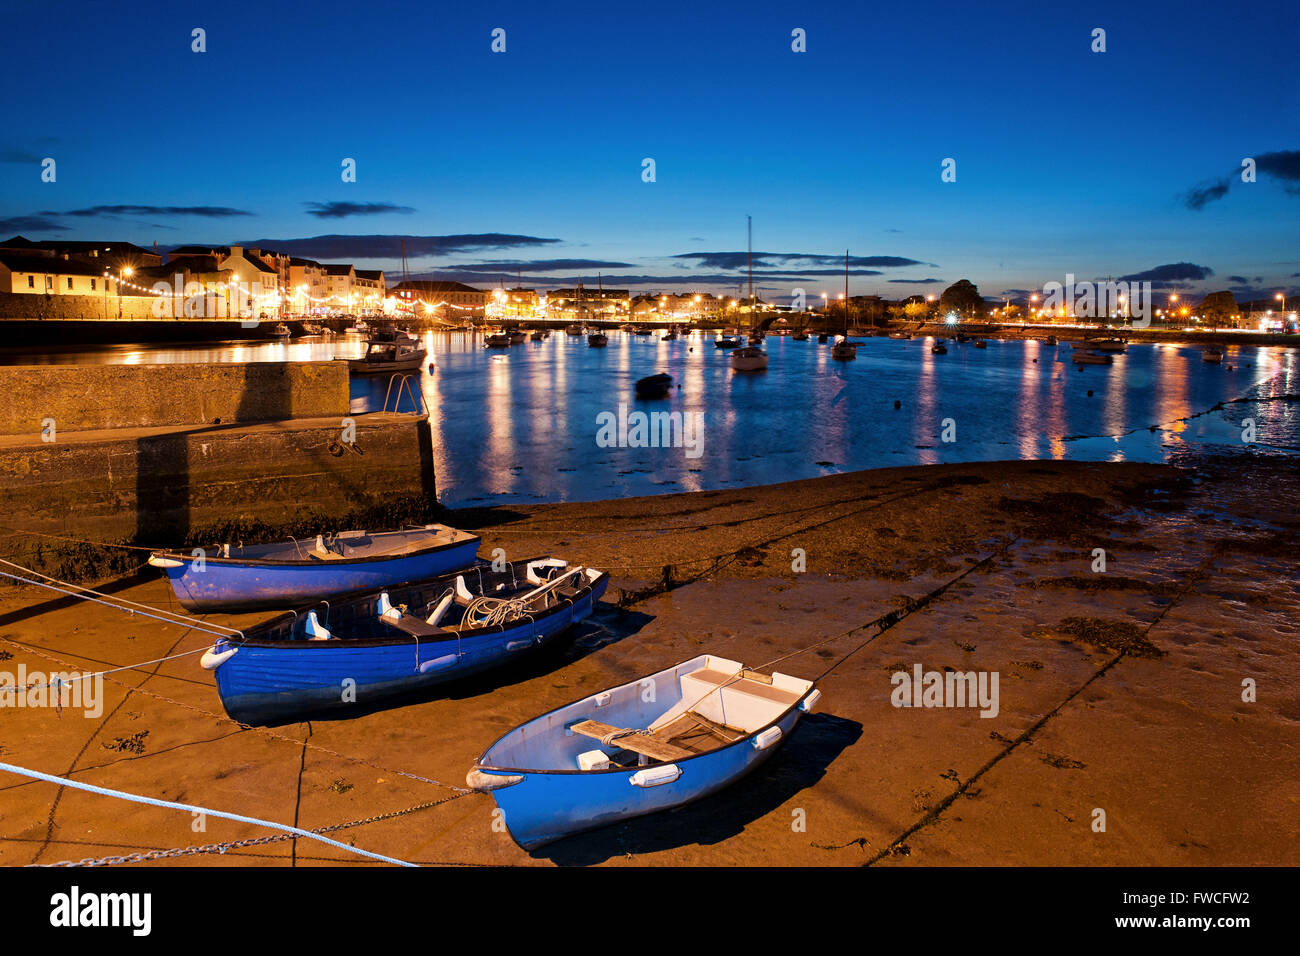 Boats moored at Dungarvan Harbour with the lights and blue evening sky over Dungarvan Town, Dungarvan, Waterford, - Stock Image